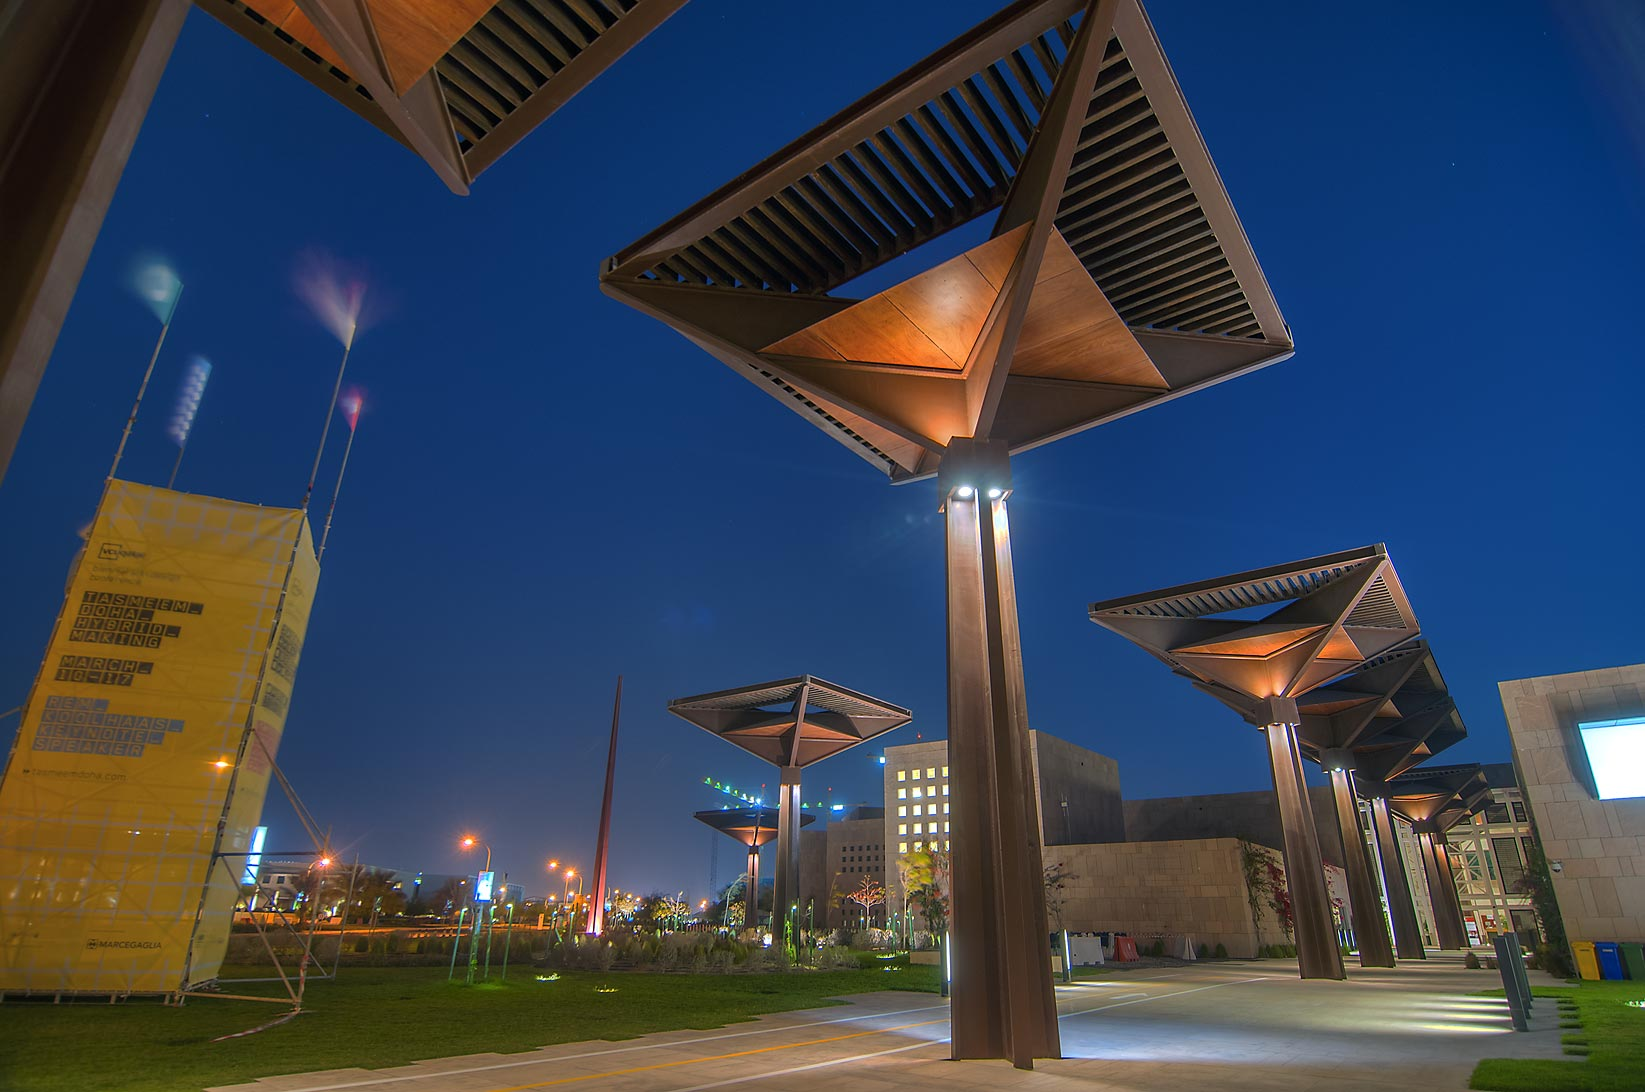 Student Center in Education City. Doha, Qatar